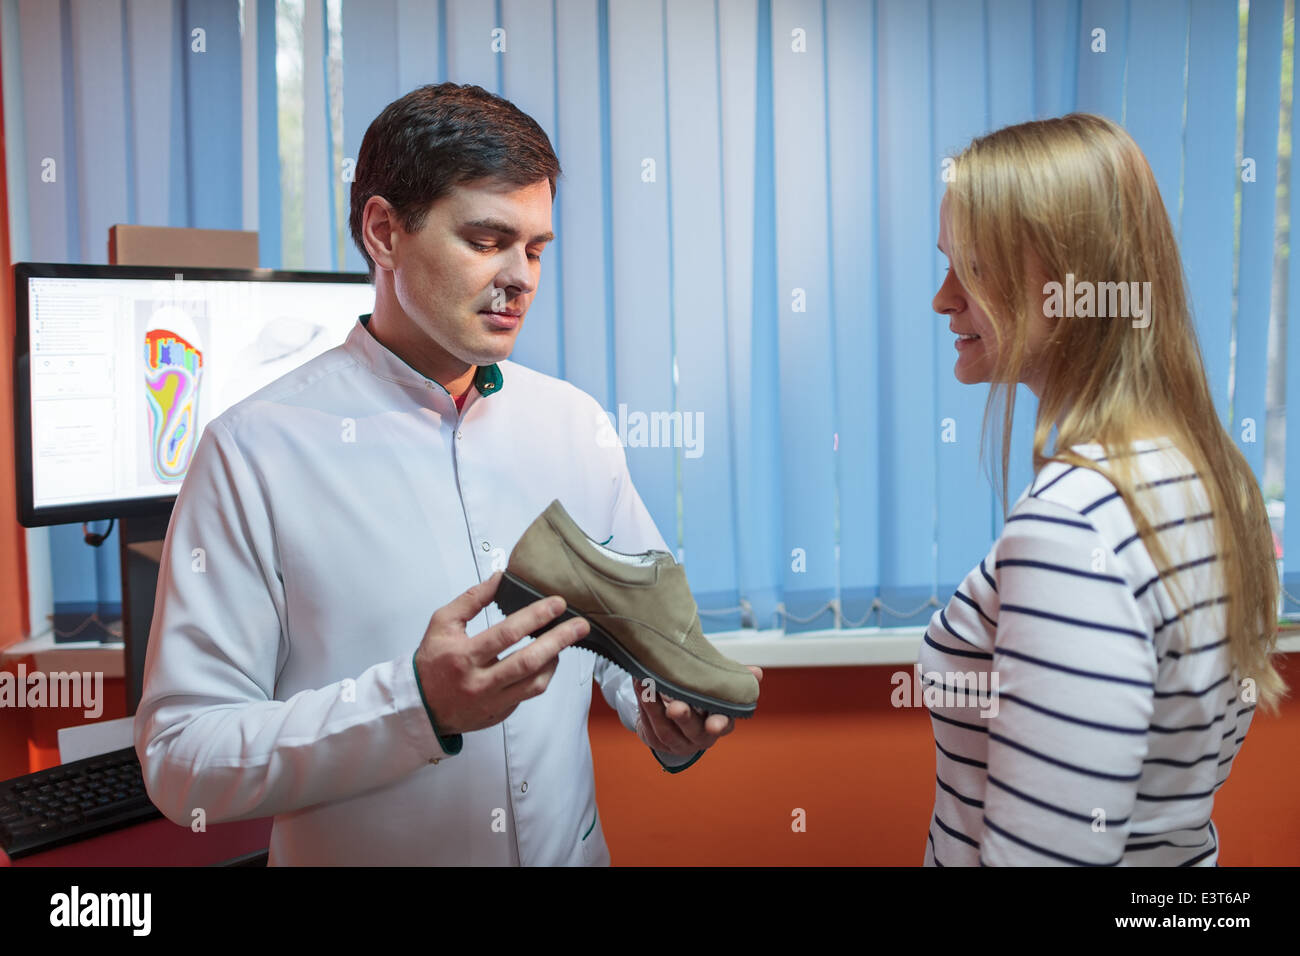 Woman consulting foot doctor - Stock Image